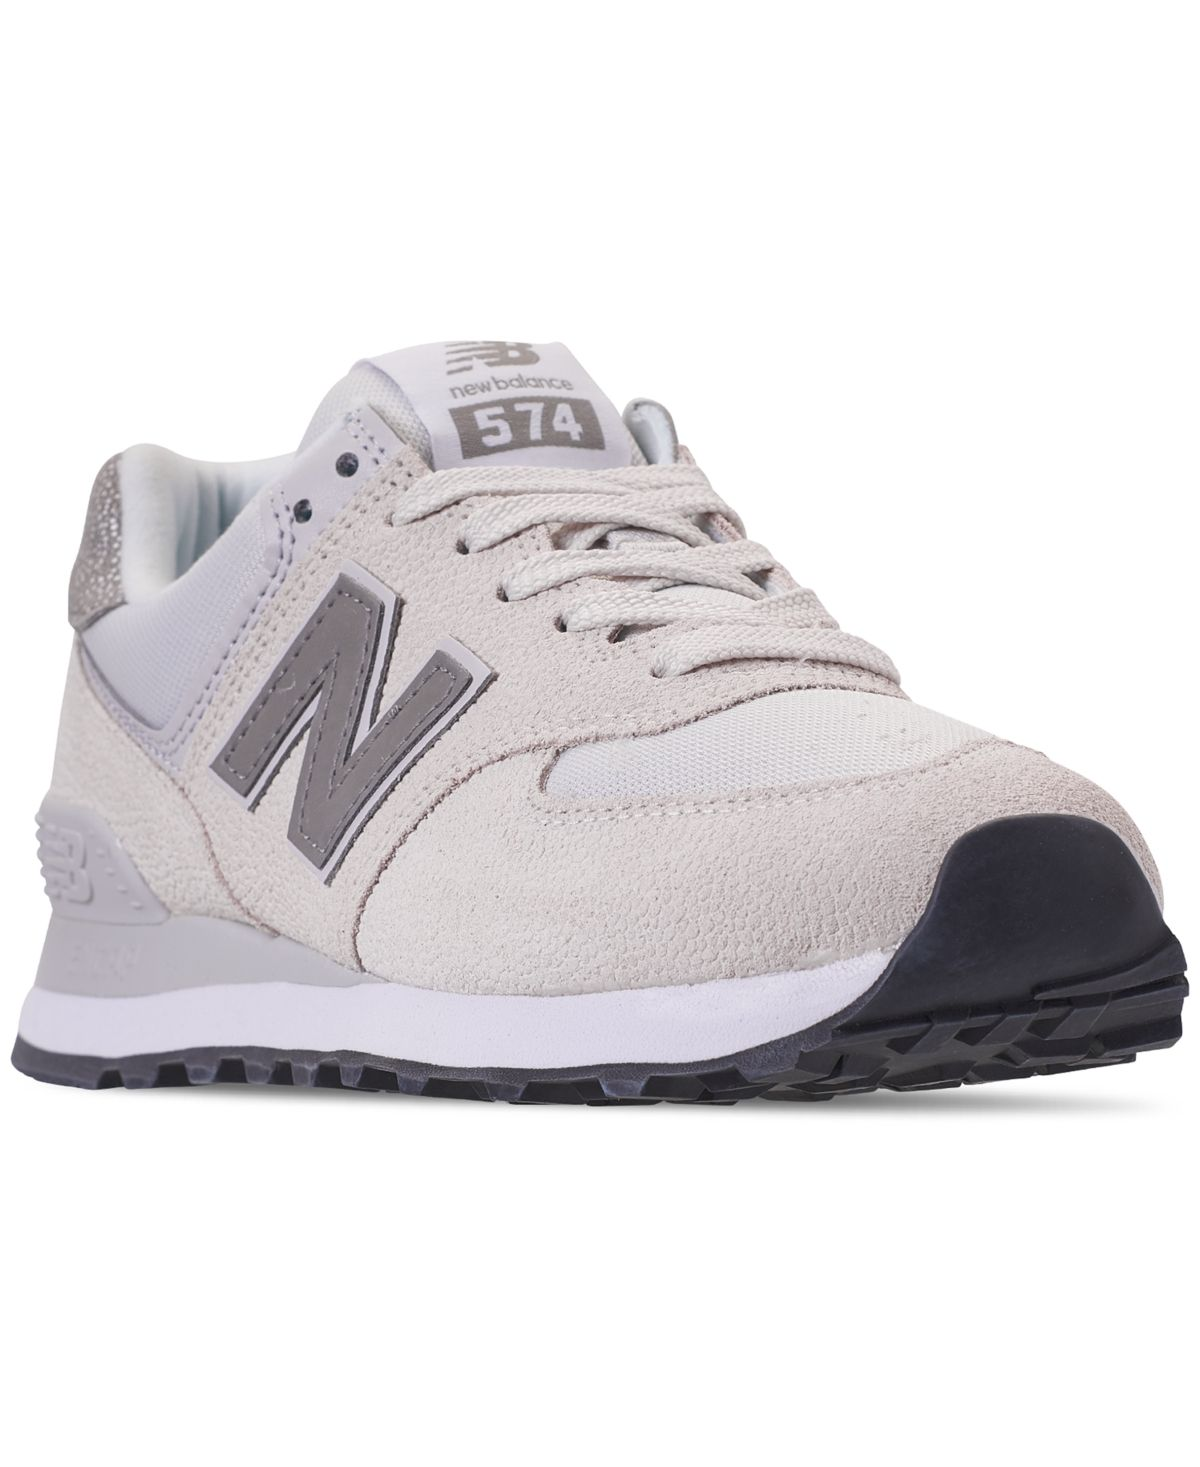 New balance womens 574 pebbled casual sneakers from